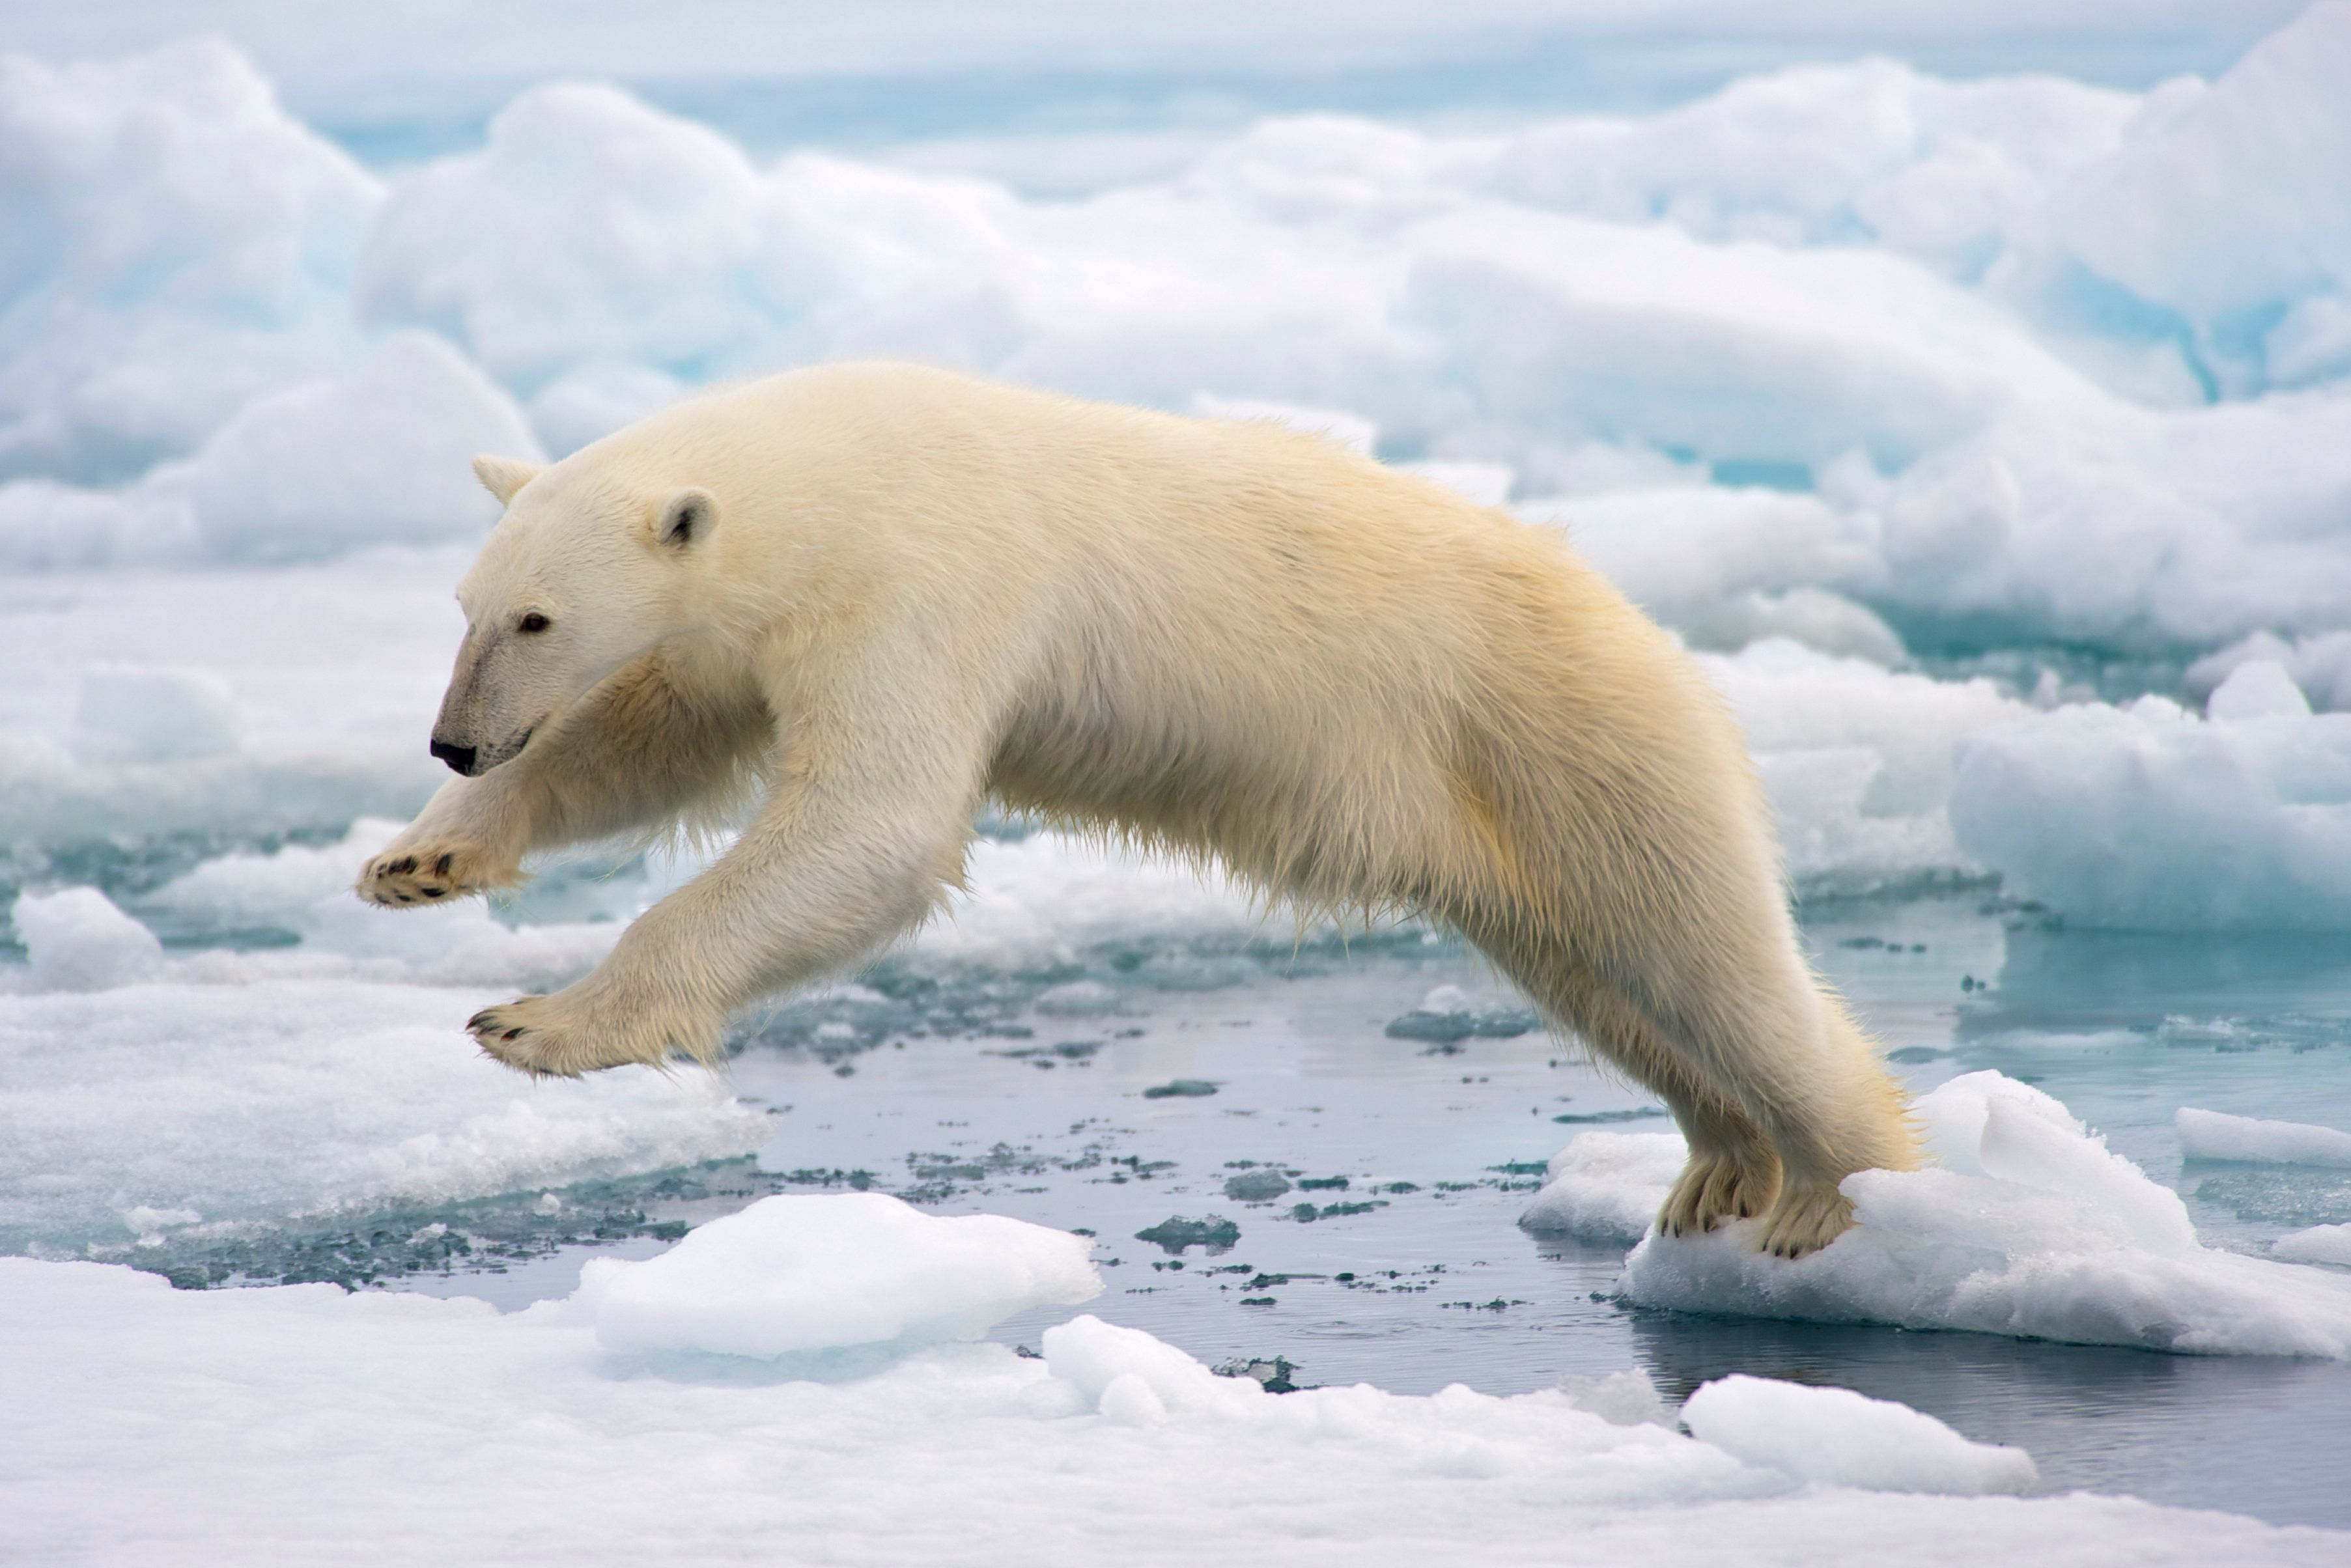 A male polar bear jumps between two pieces of ice at the Svalbard archipelago in Norway.